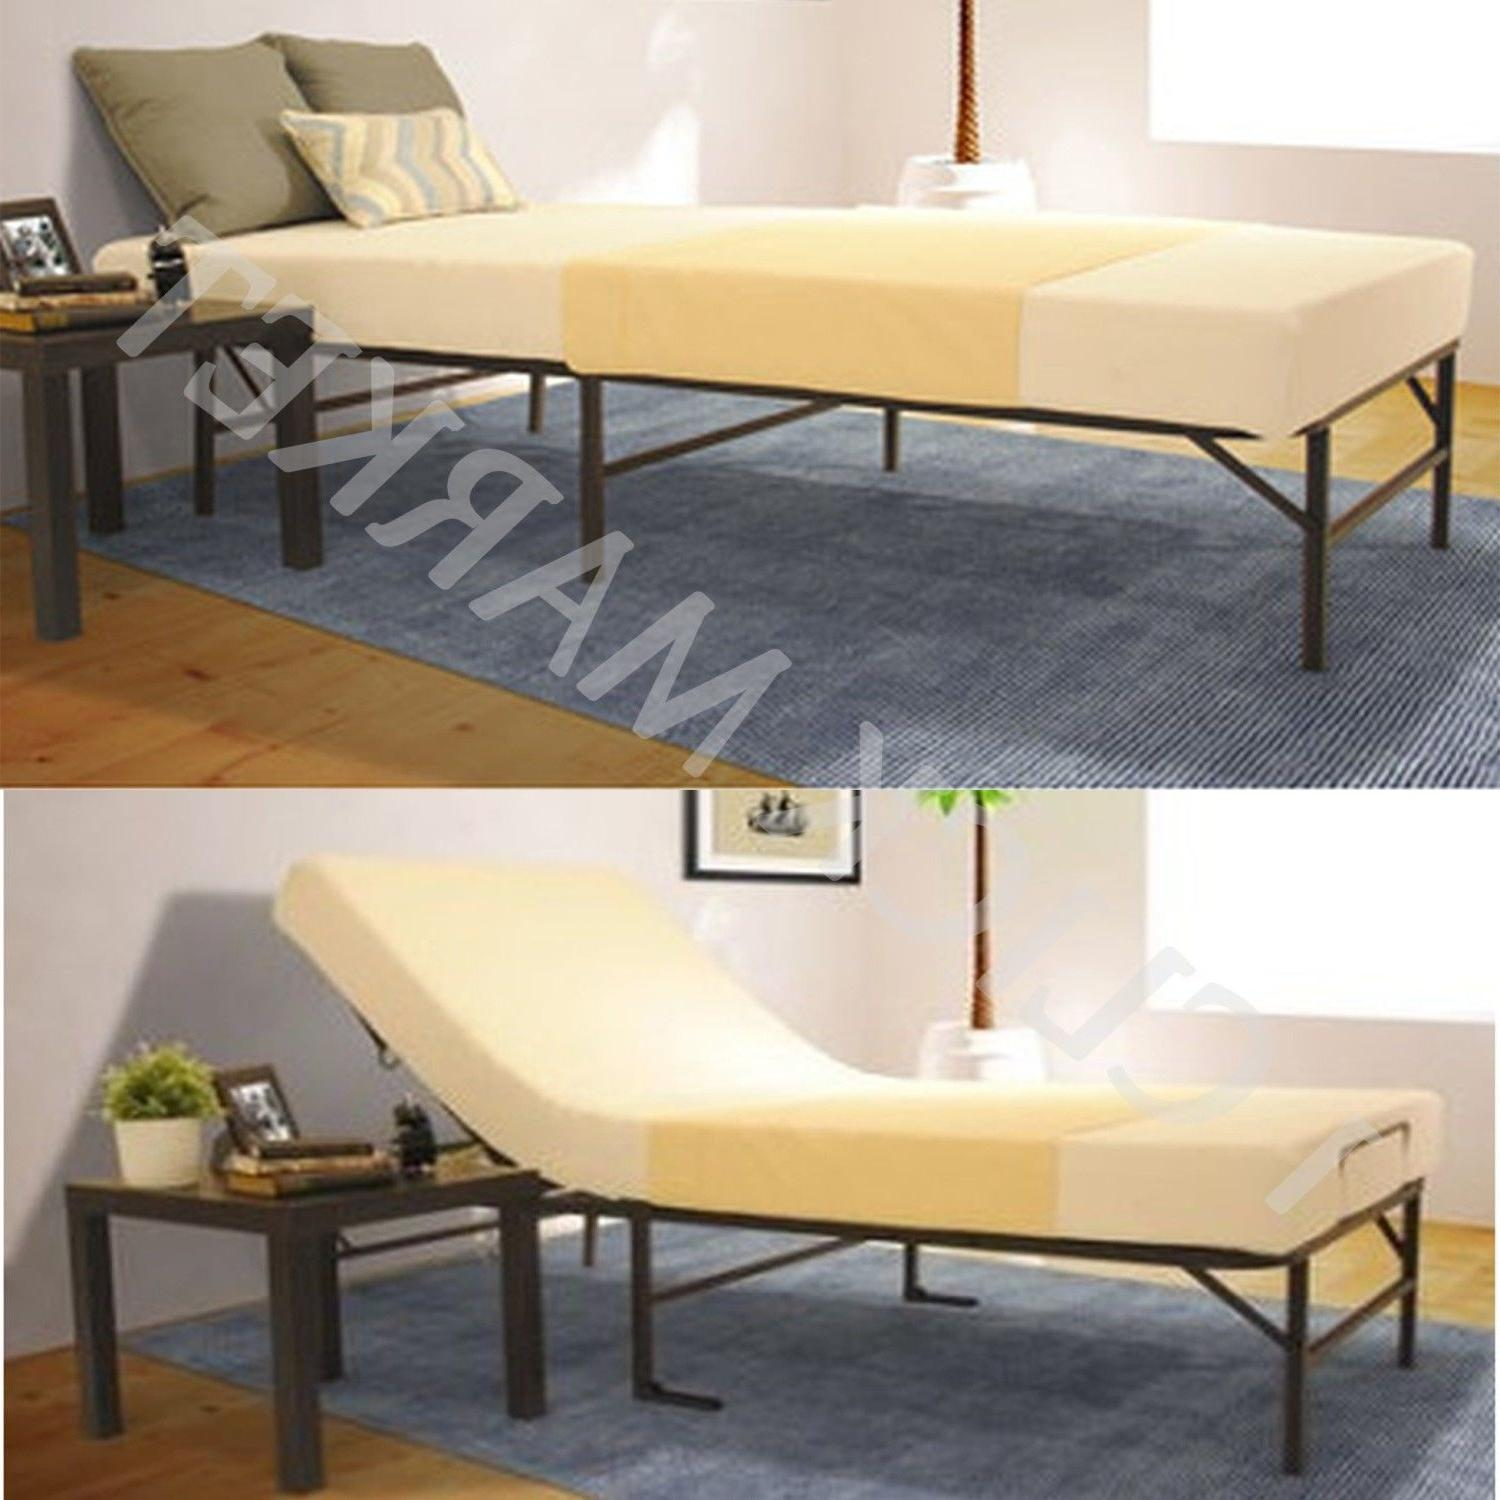 TWIN Foot Bed Lift Base